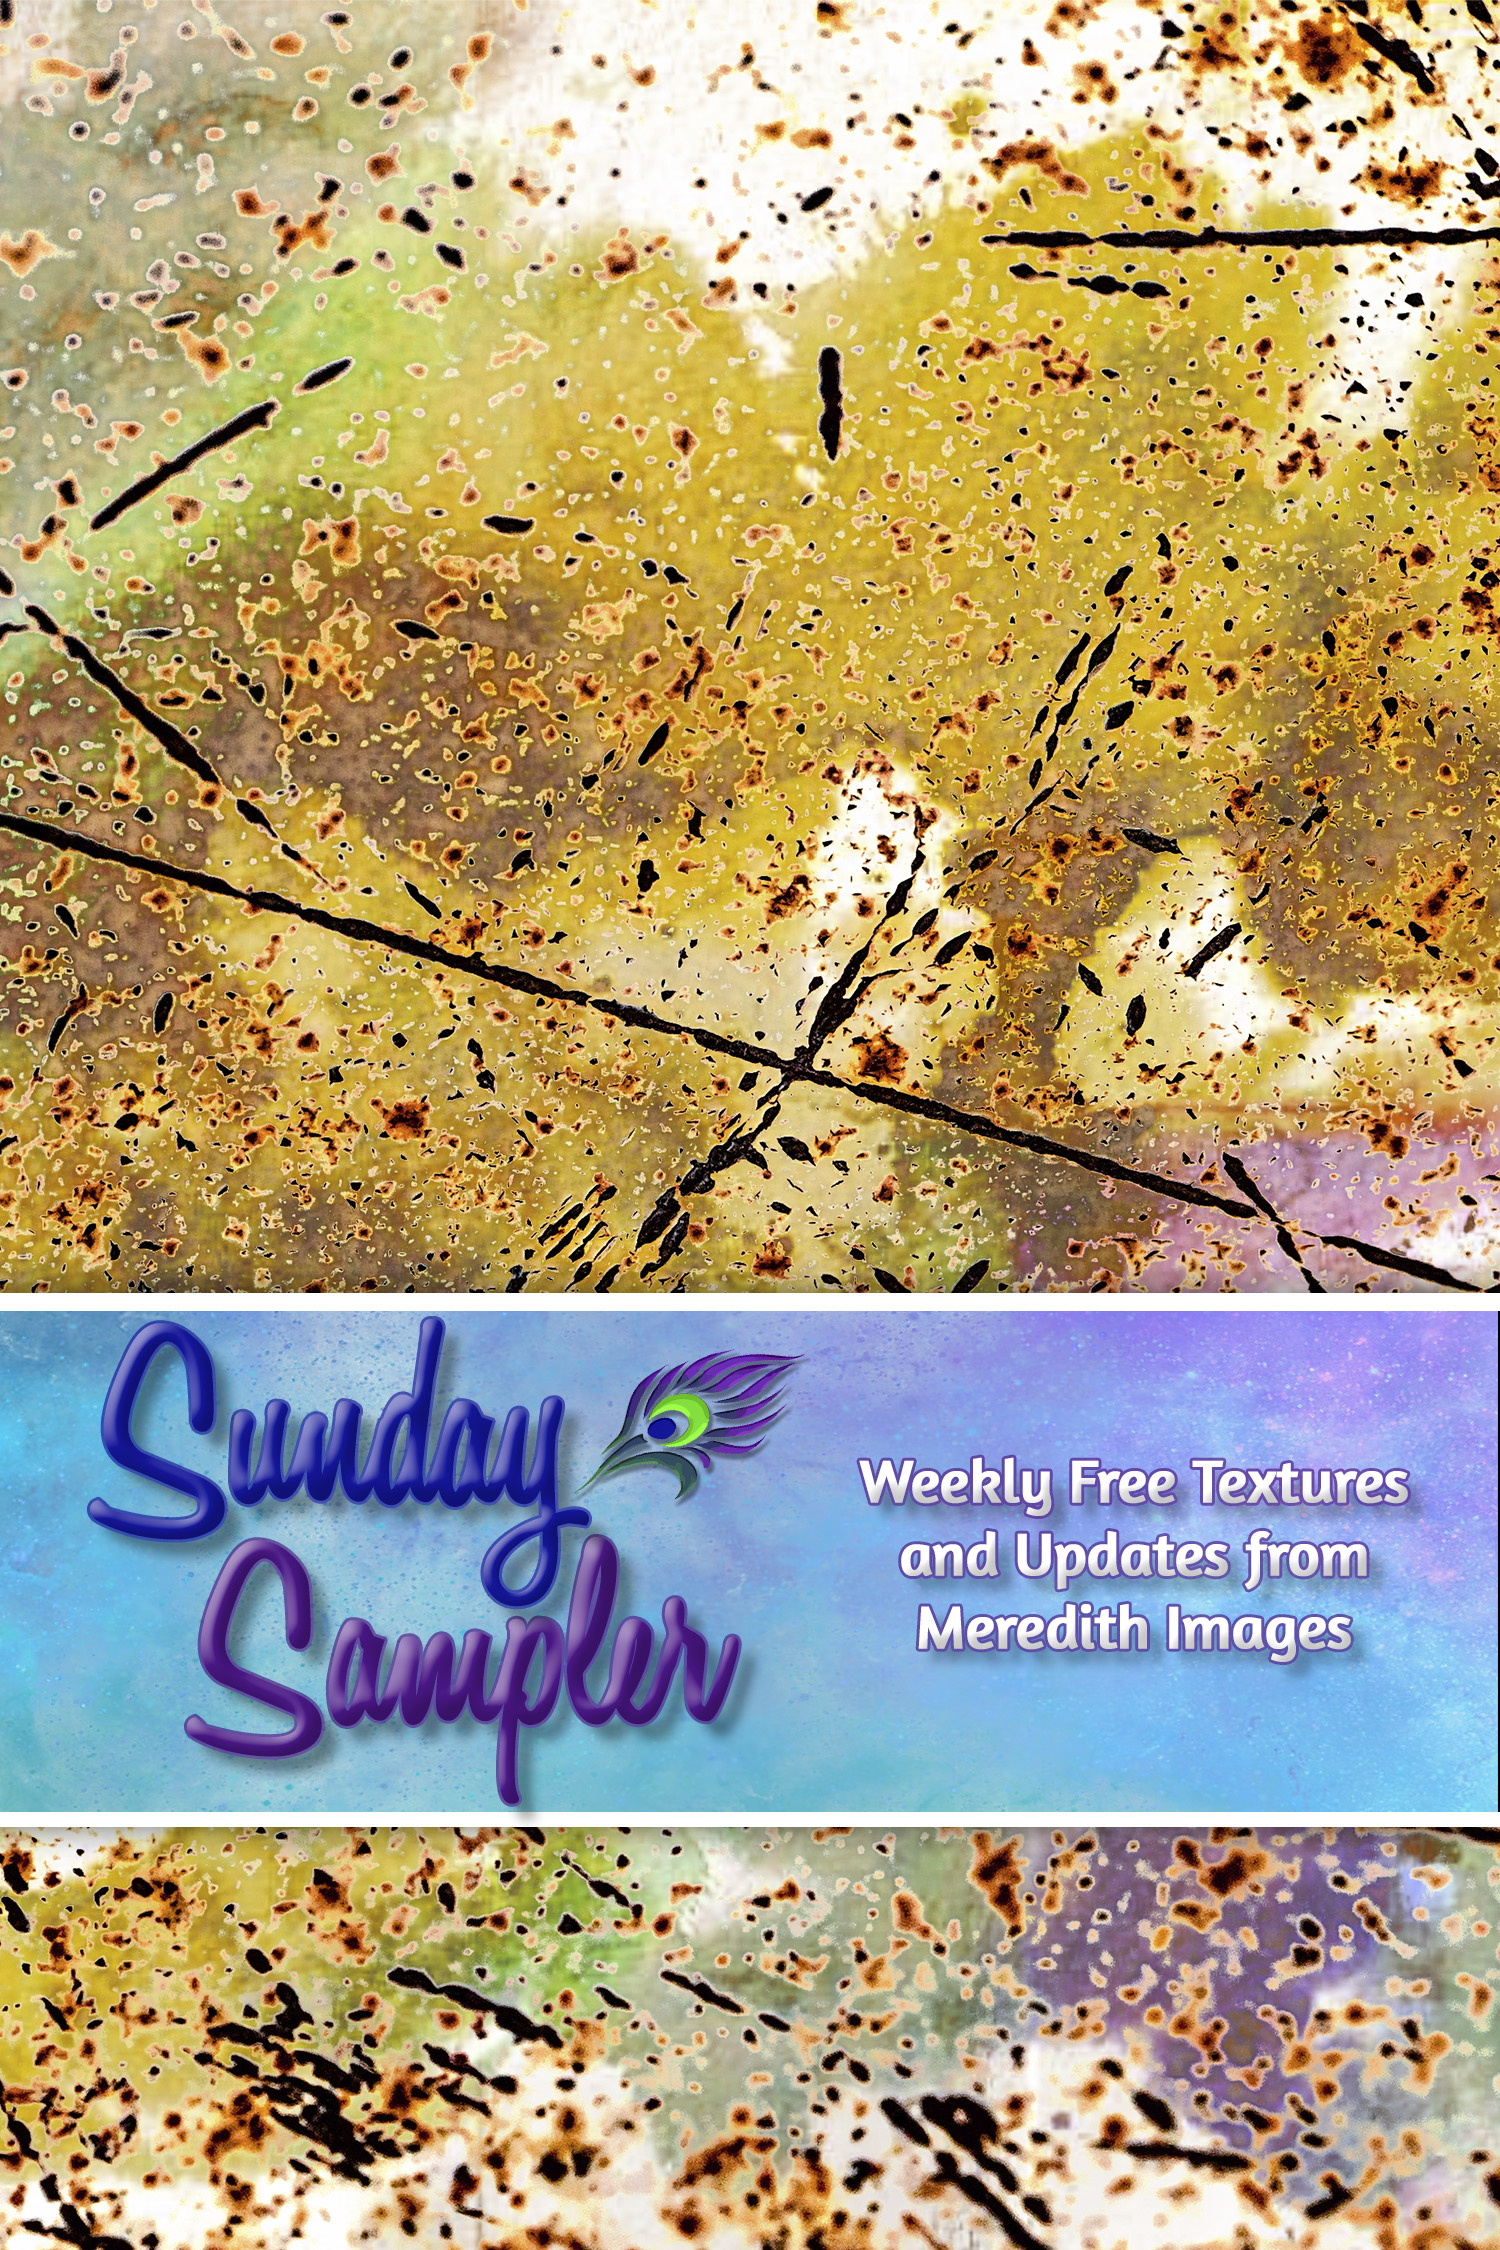 Sunday Sampler Jan. 24